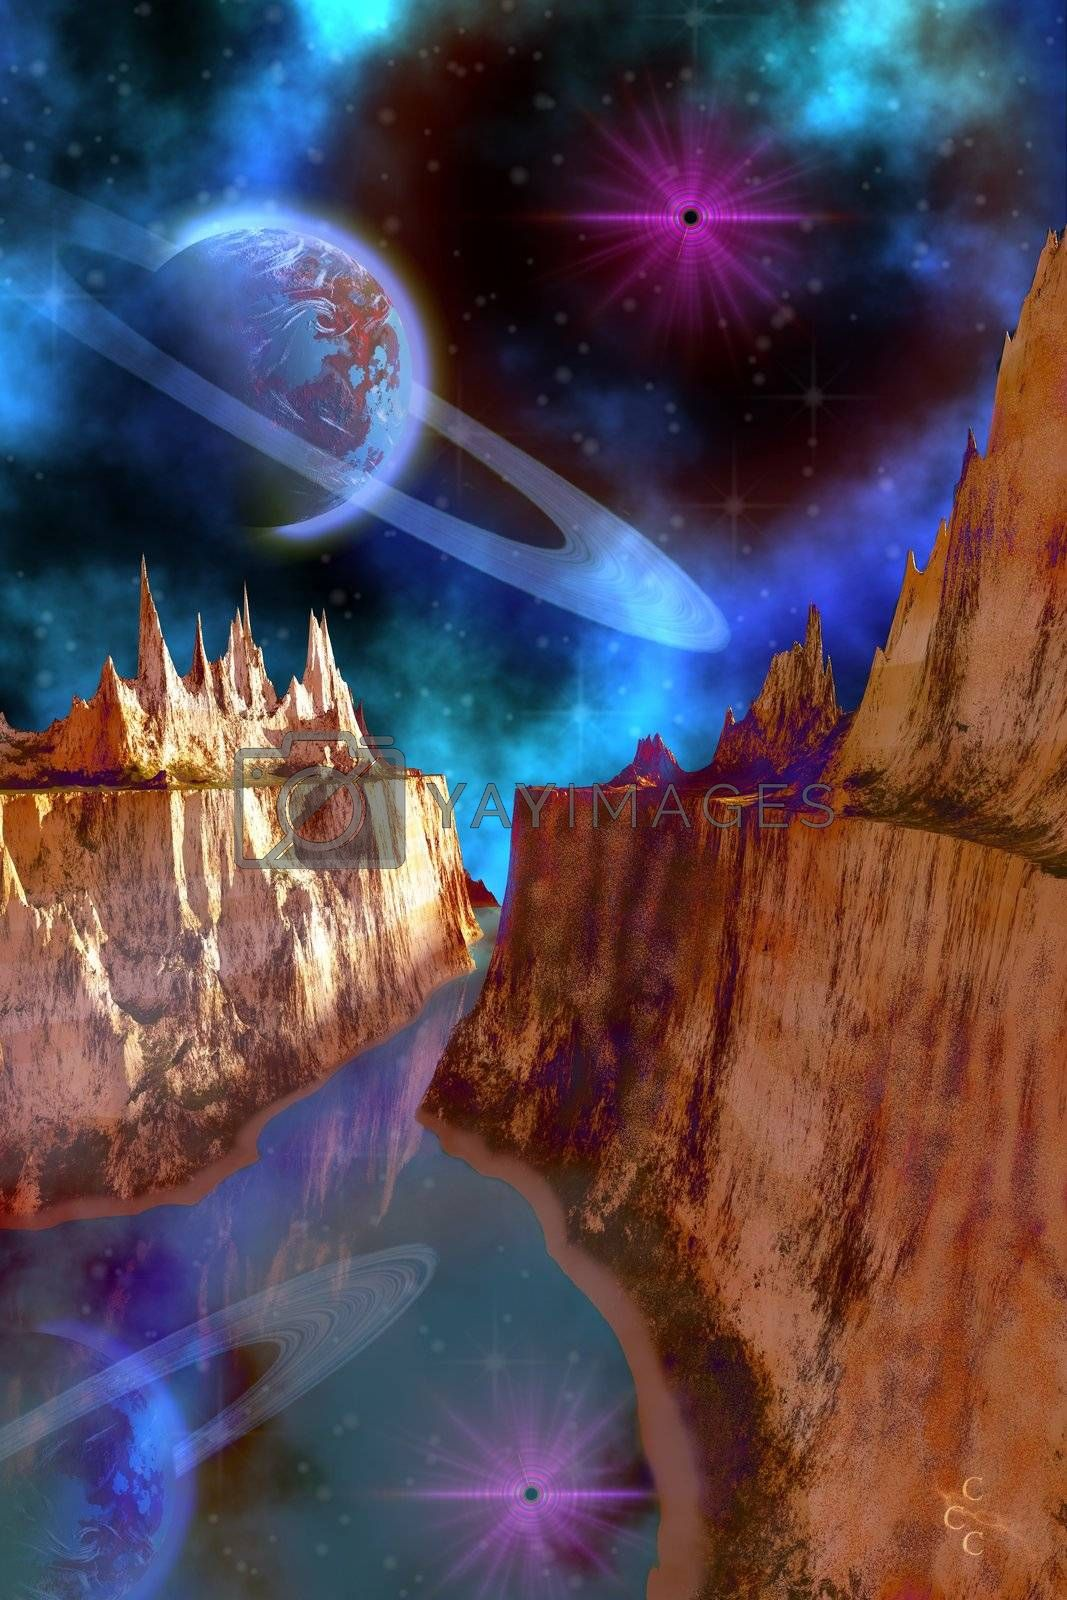 Cosmic seascape on another world.